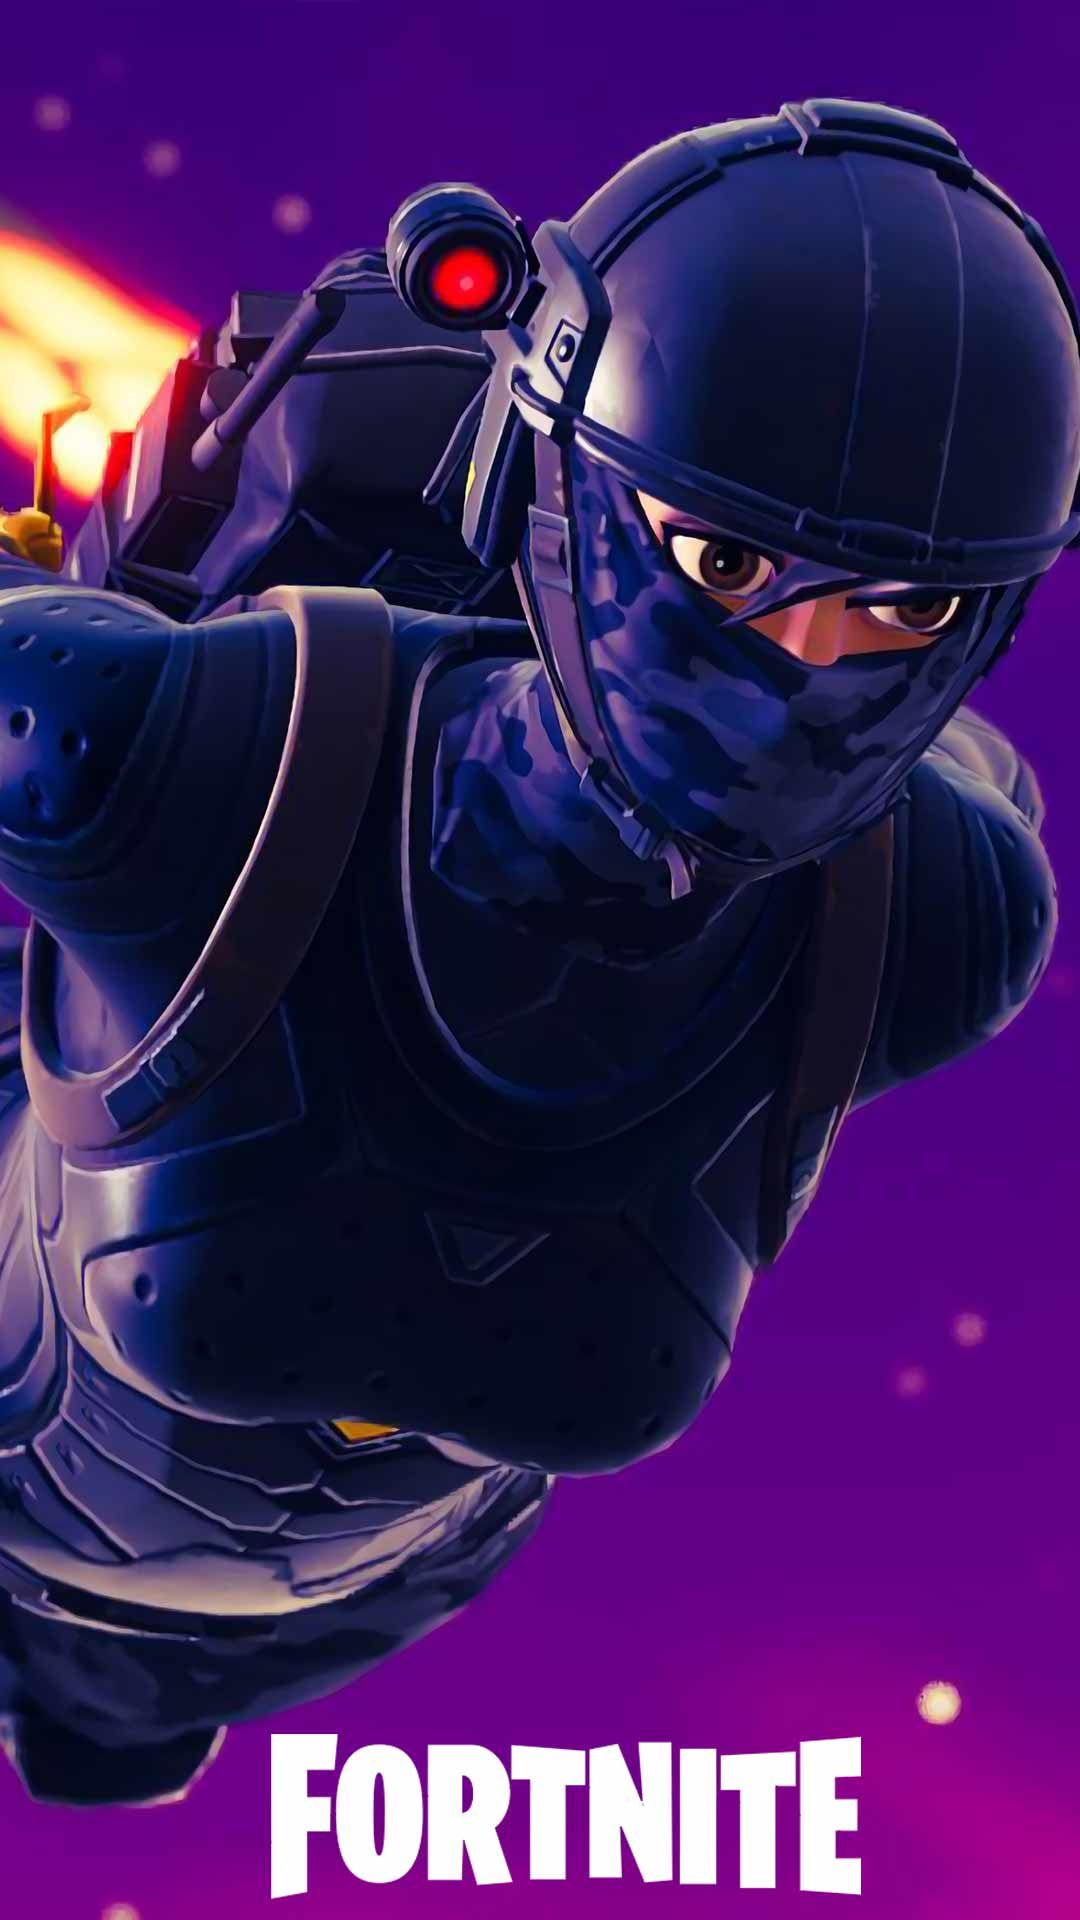 30 Fortnite Wallpaper Hd Phone Backgrounds For Iphone Android Lock Screen Characters Skins Art Fortnite Hd Wallpaper Iphone Gaming Wallpapers